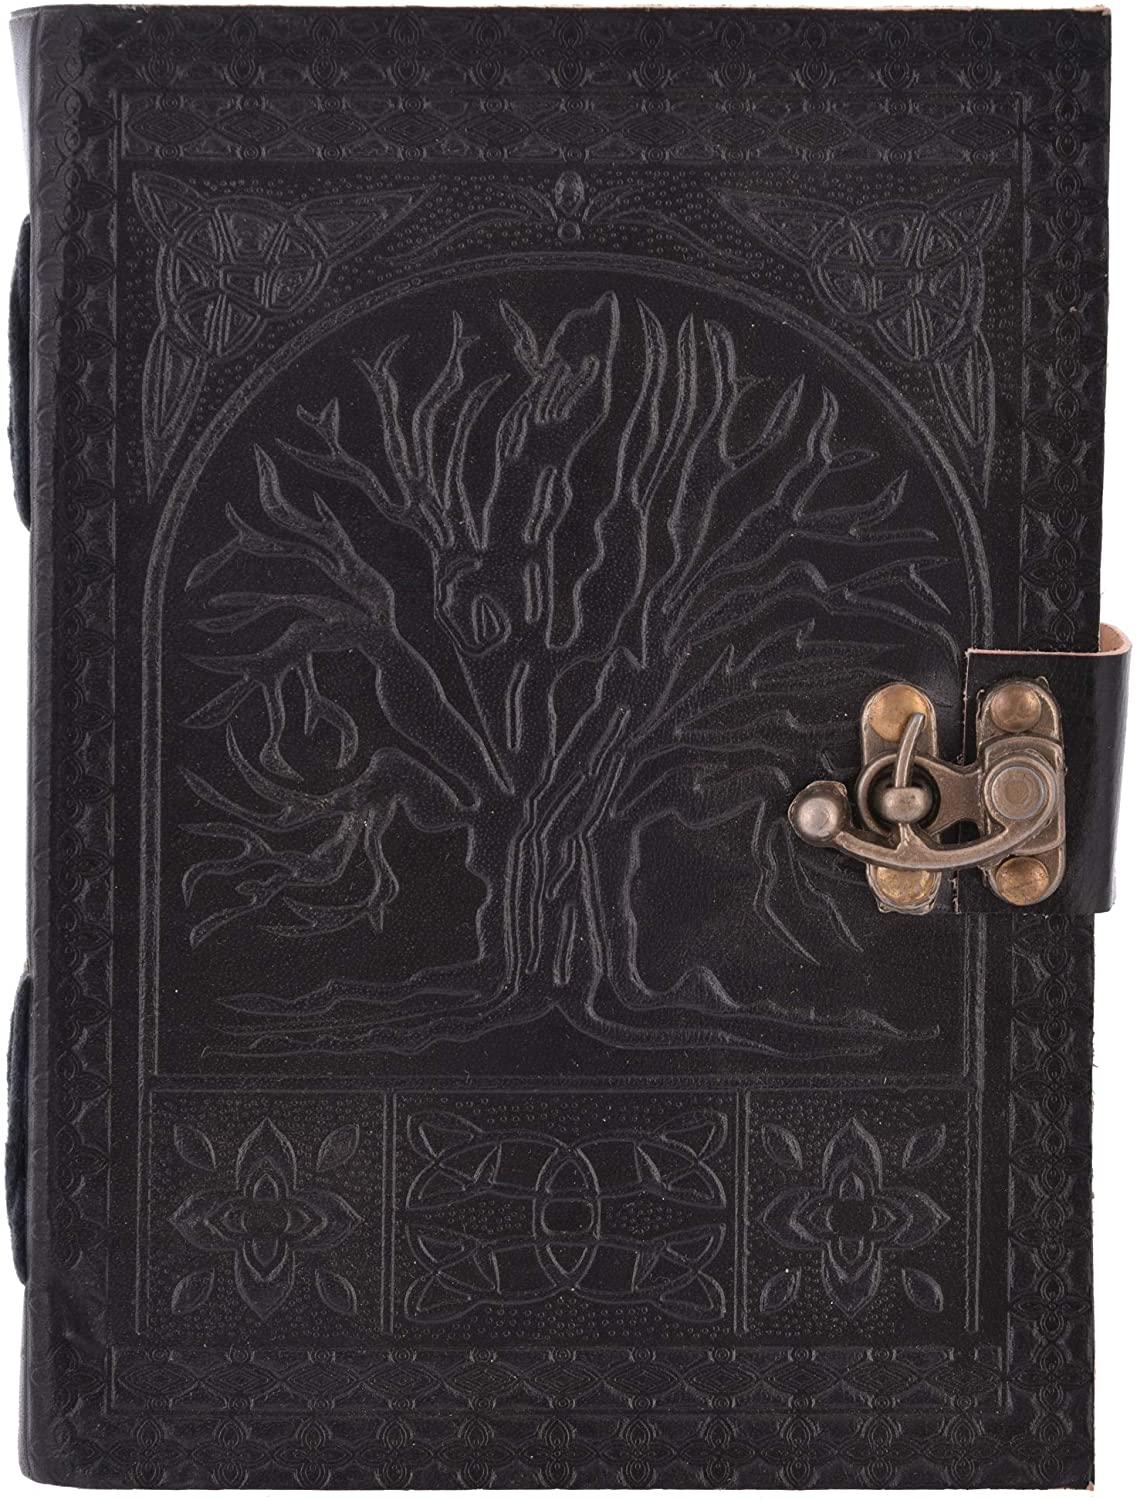 Tree of Life Embossed Leather Journal, Antique Handmade Daily Notepad for Men & Women Unlined Handmade Paper 7 x 5 Inches, Handmade Travelers Notebook, Perfect for Writing, Gifts (Tree Black)